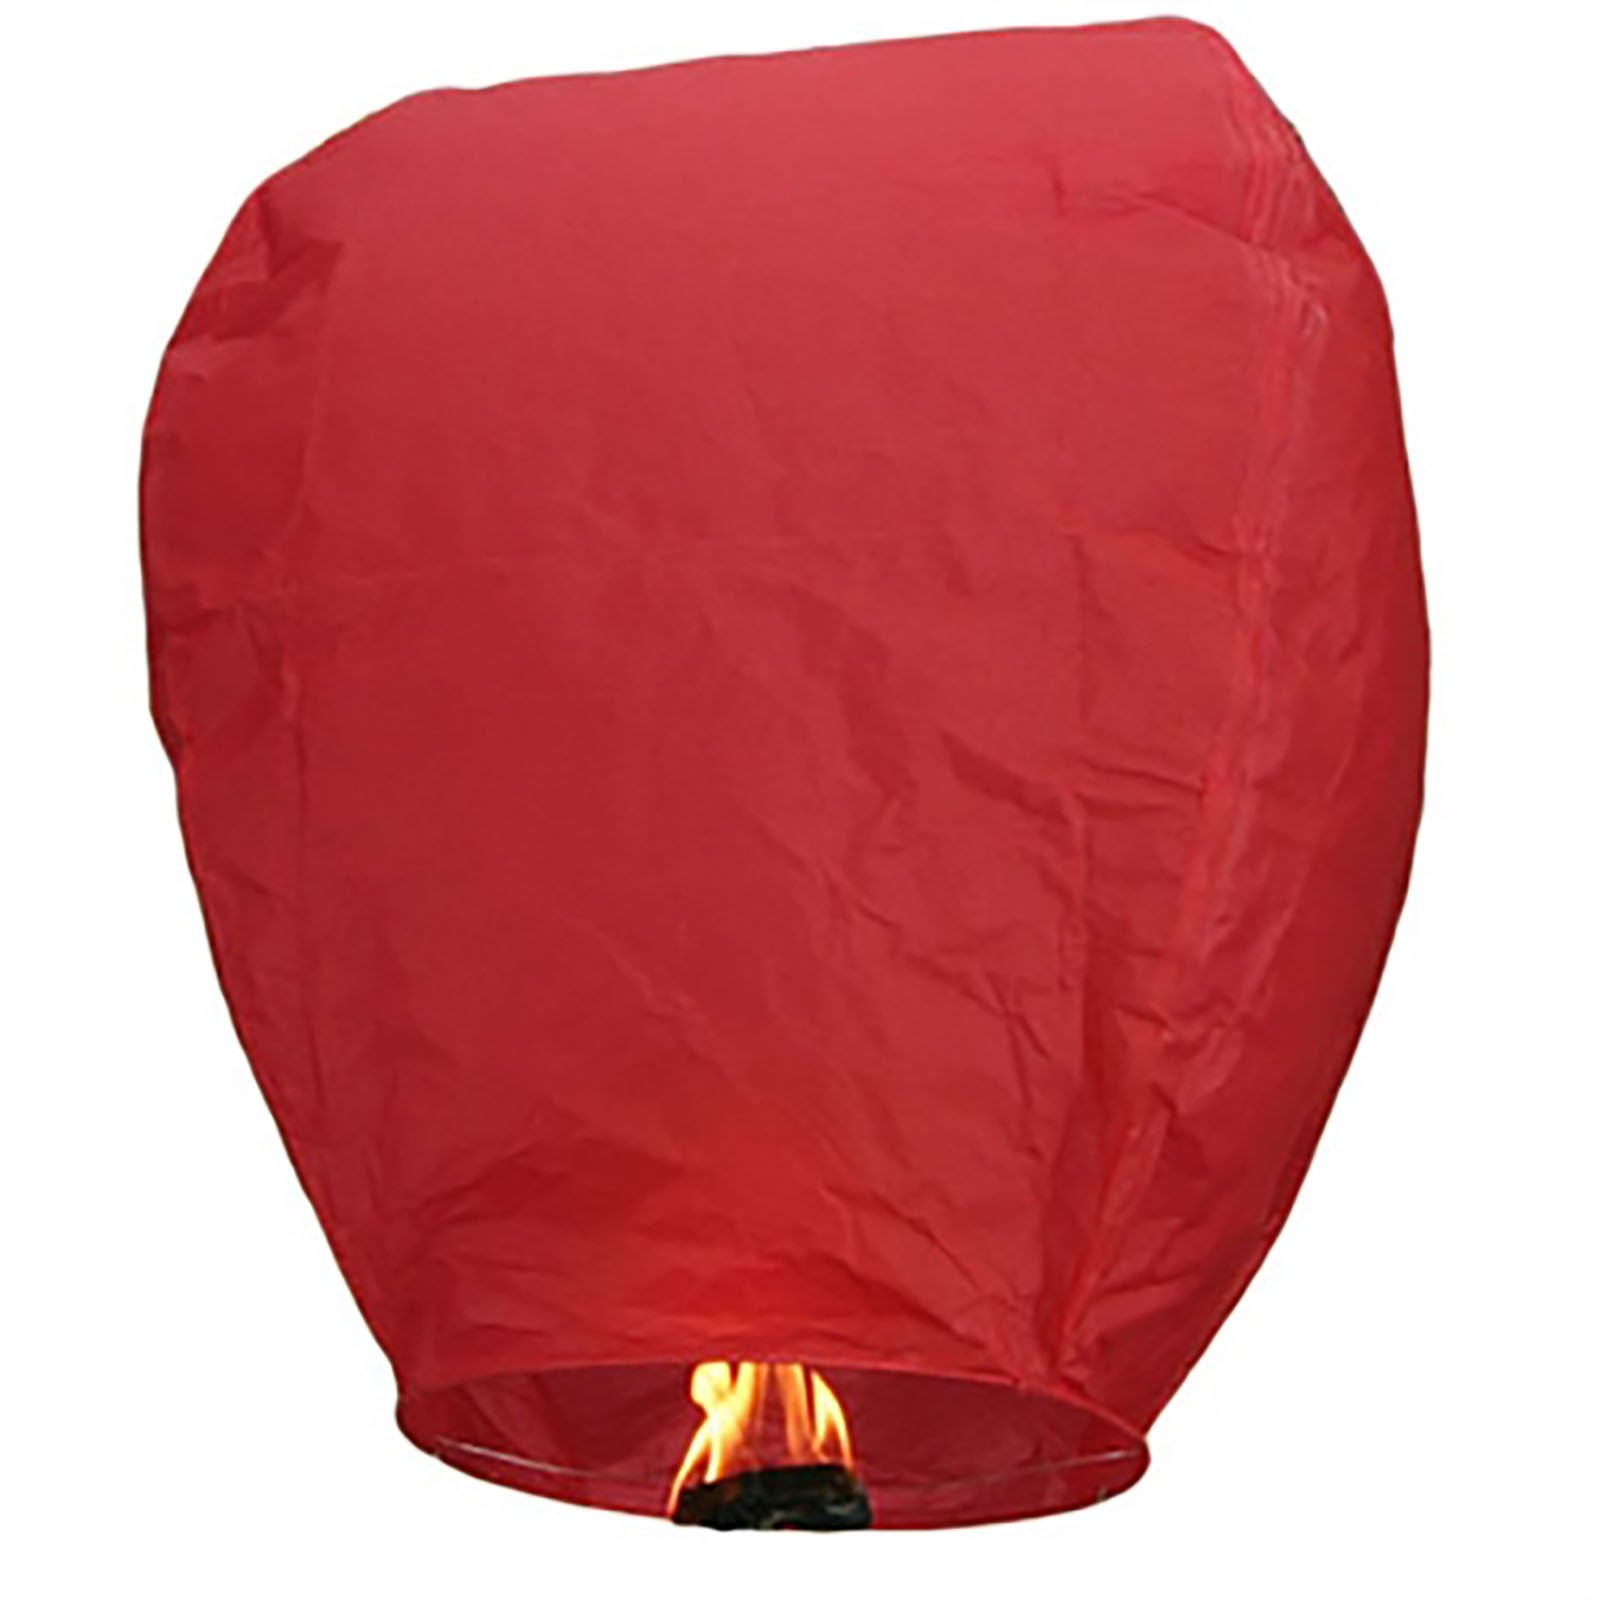 Commercial Bargains 300 Pack Red Paper Chinese Floating Sky Lantern Flying Candle Lamps